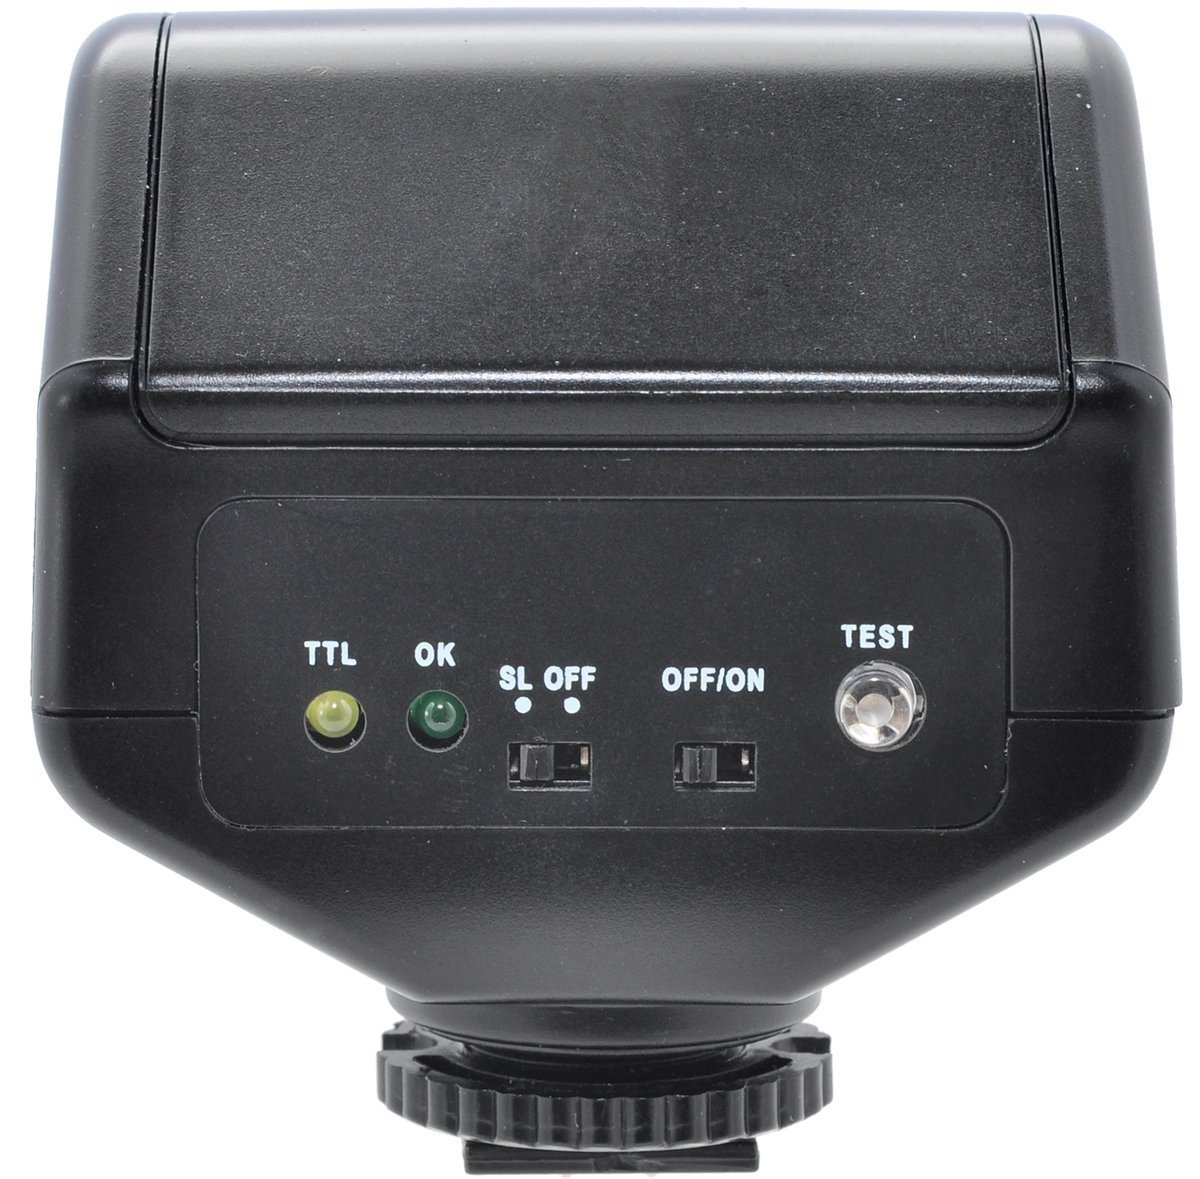 D130 Professional TTL Swivel Flash For Canon T1i, T2i, T3, T3i, T4i, T5, T5i, SL1, 10D, 20D, 30D, 40D with a Complete Starter Kit by Tronix